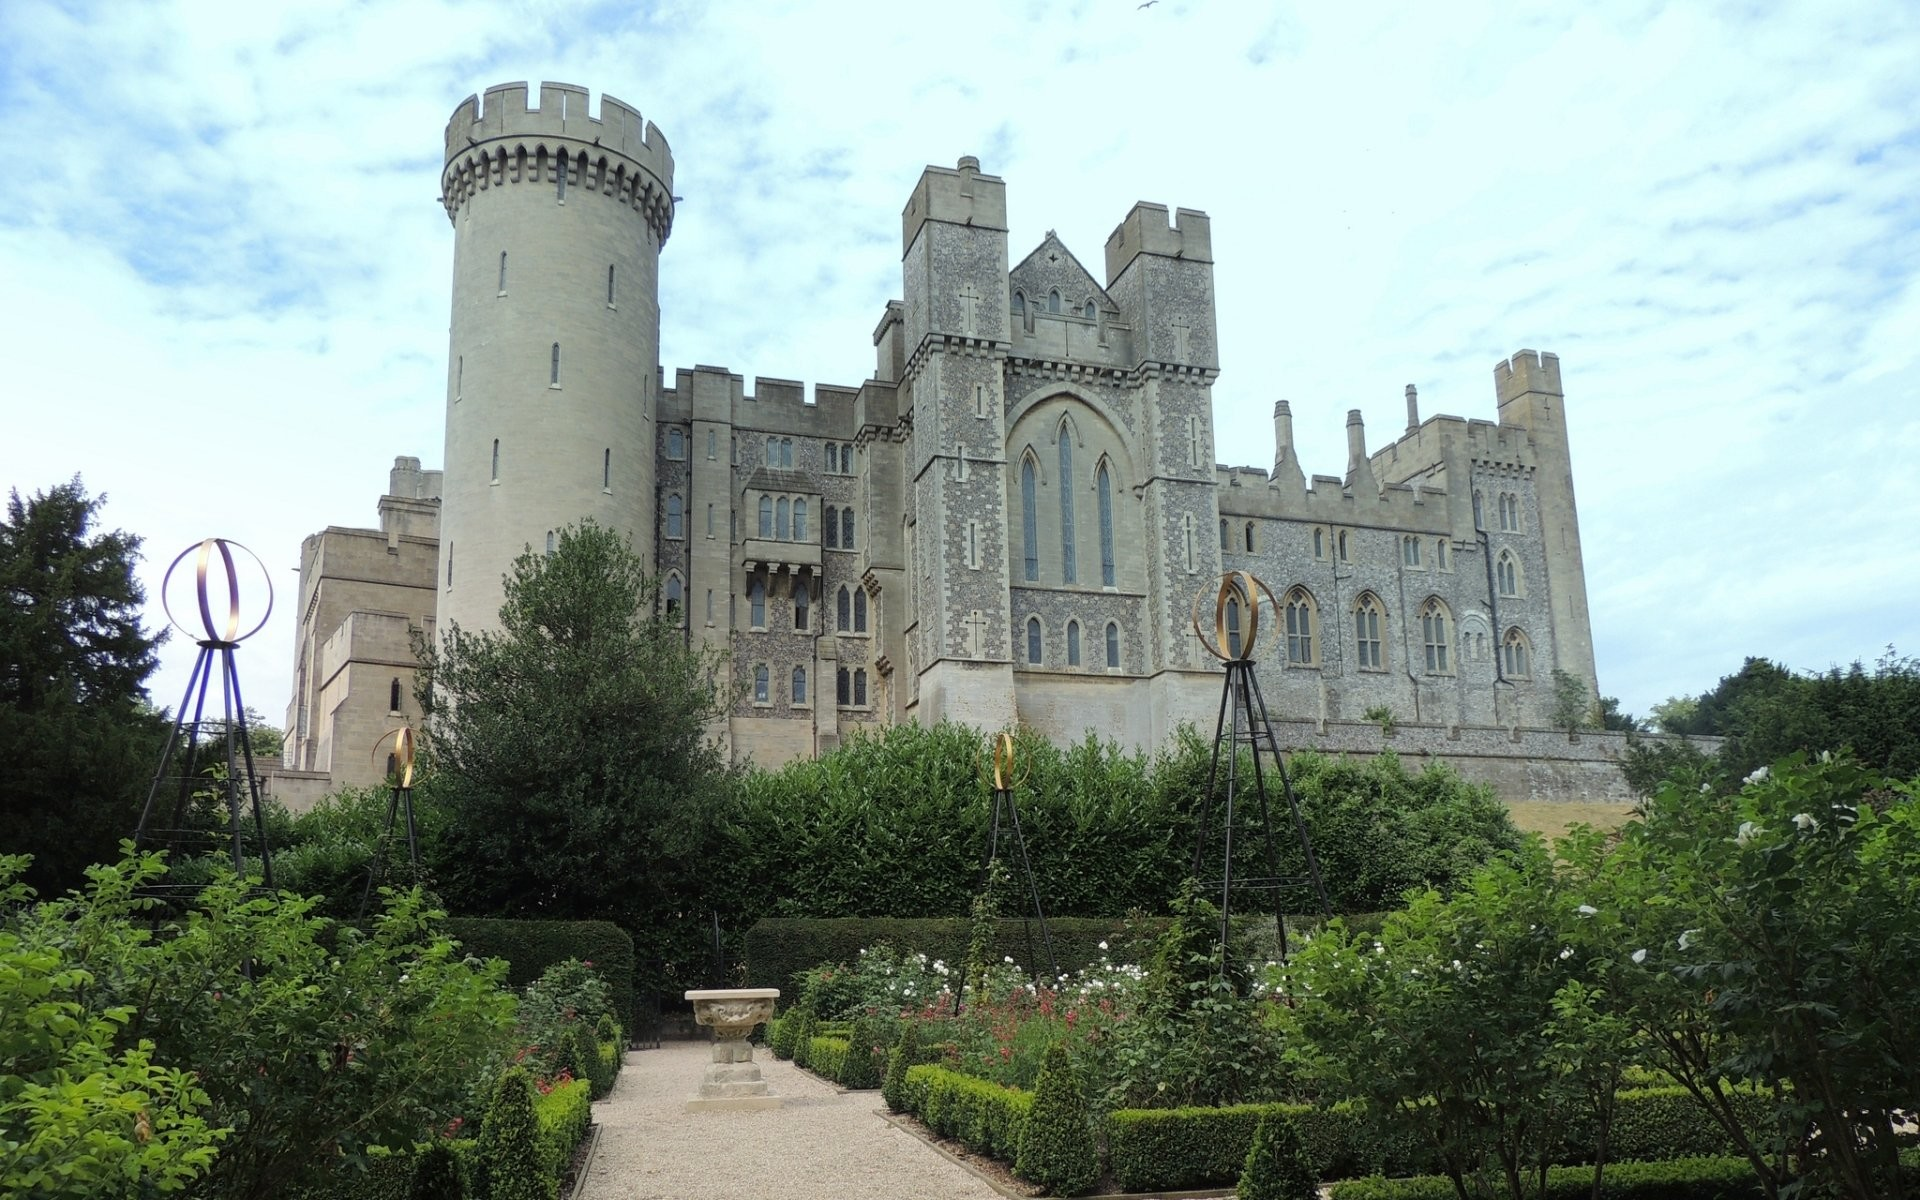 1920x1200 Explore More Wallpapers in the Arundel Castle Subcategory!